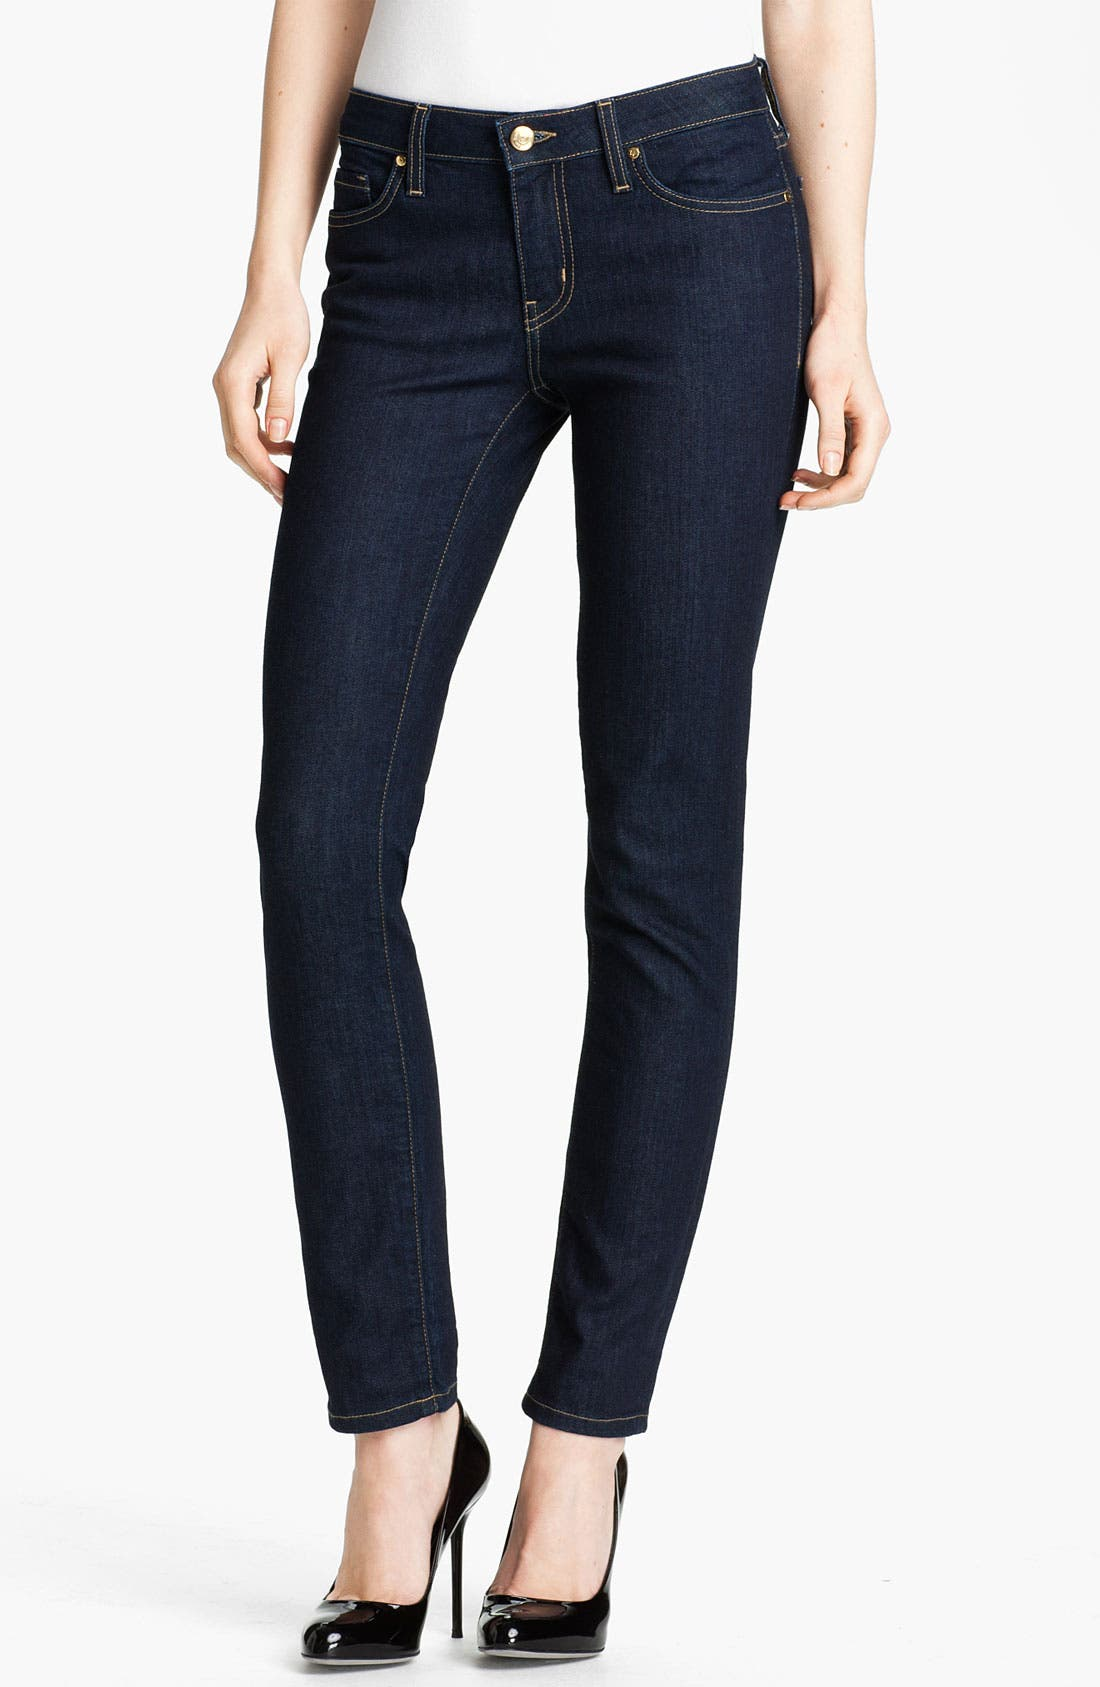 Alternate Image 1 Selected - kate spade new york 'broome street' skinny jeans (Indigo Wash) (Online Only)